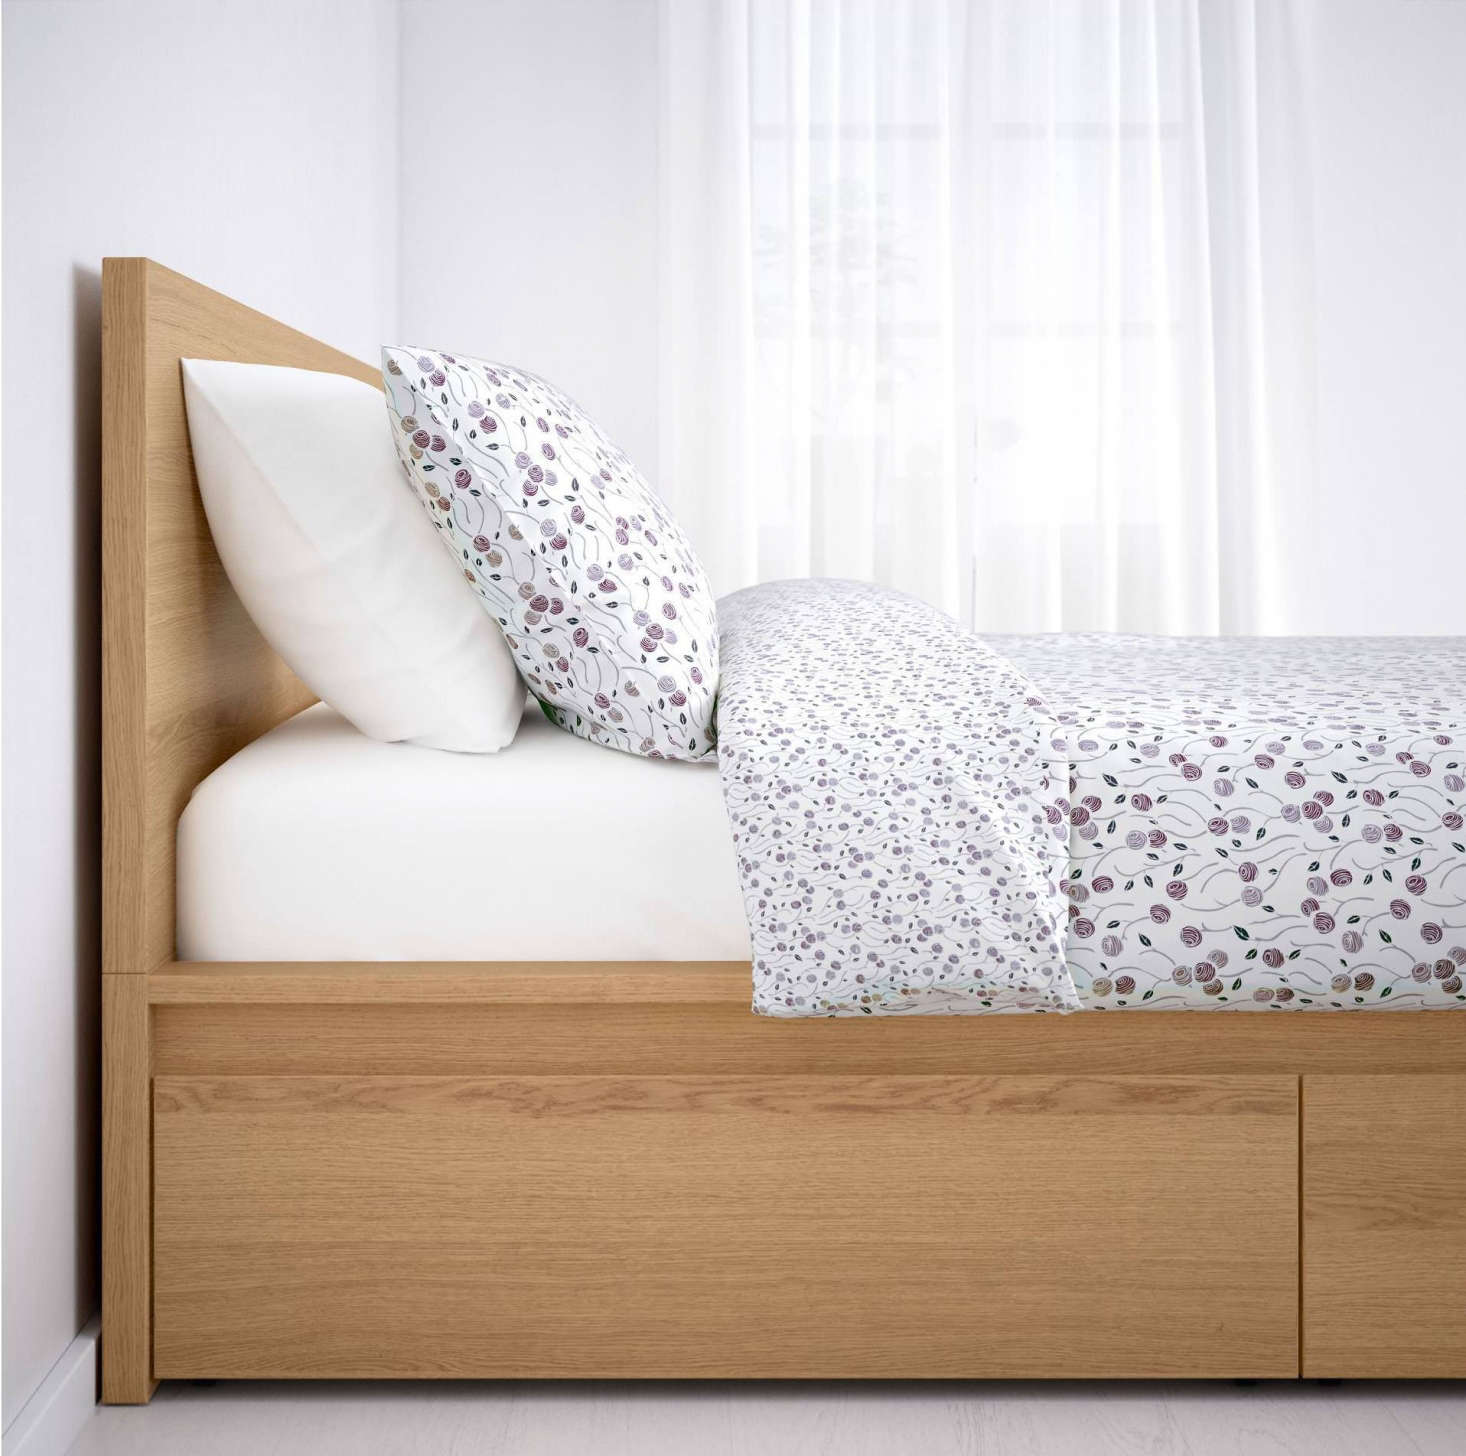 Ikea Malm Storage Bed In Oak